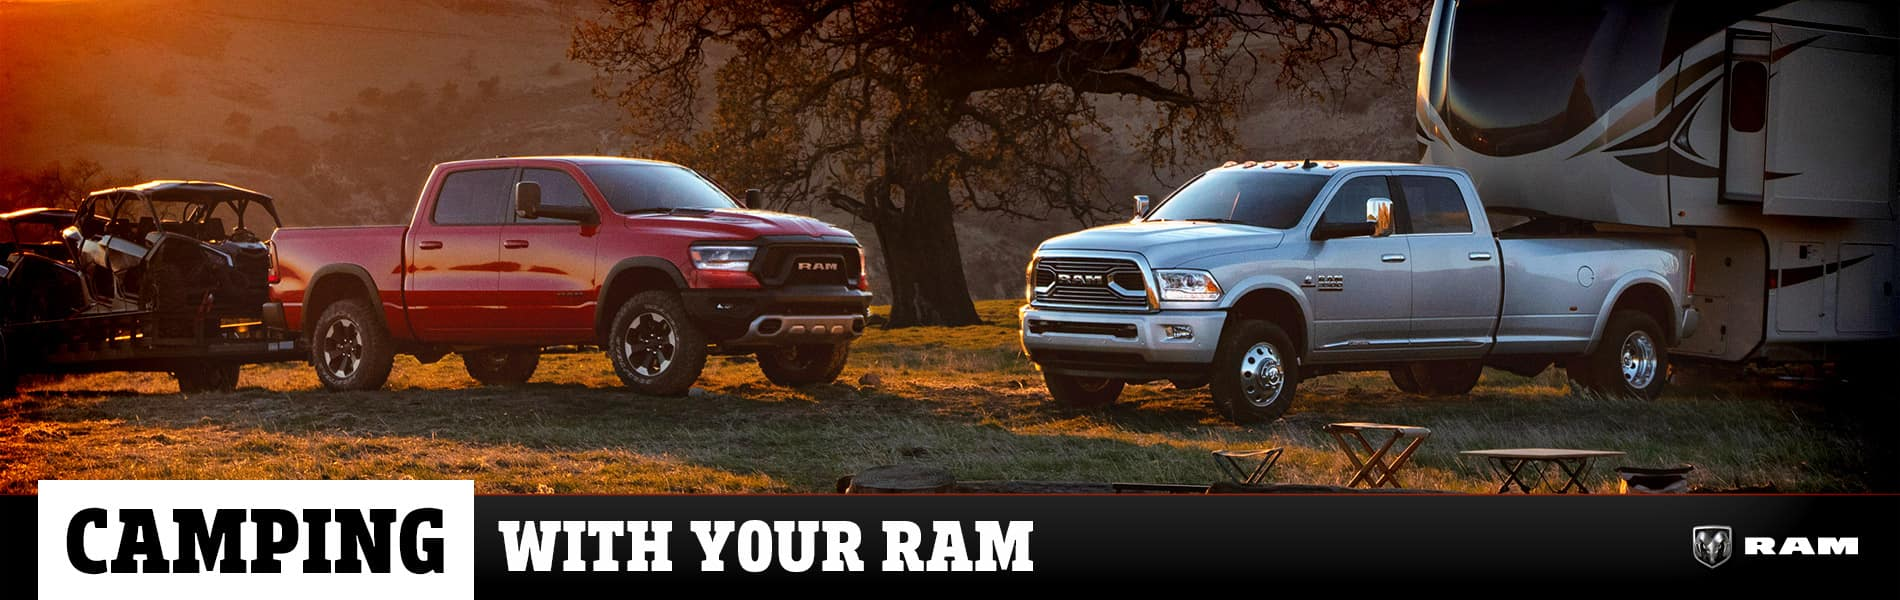 How to Customize Your Ram 1500 for Camping   Decatur, IN